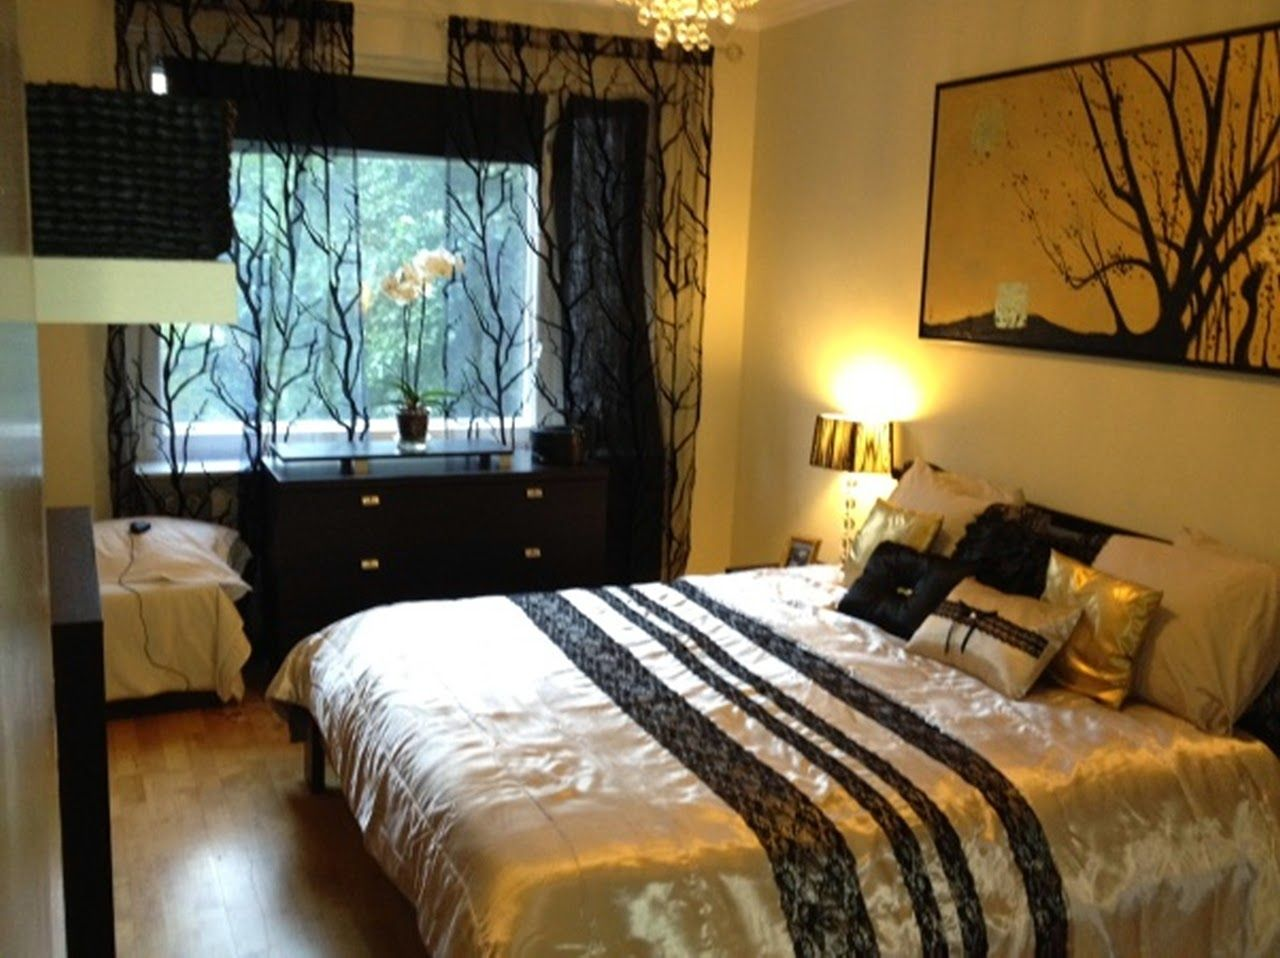 Pinrossi Tossi On Bedrooms For Couples  Decor Para Parejas Cool Black And Gold Bedroom Ideas Decorating Inspiration